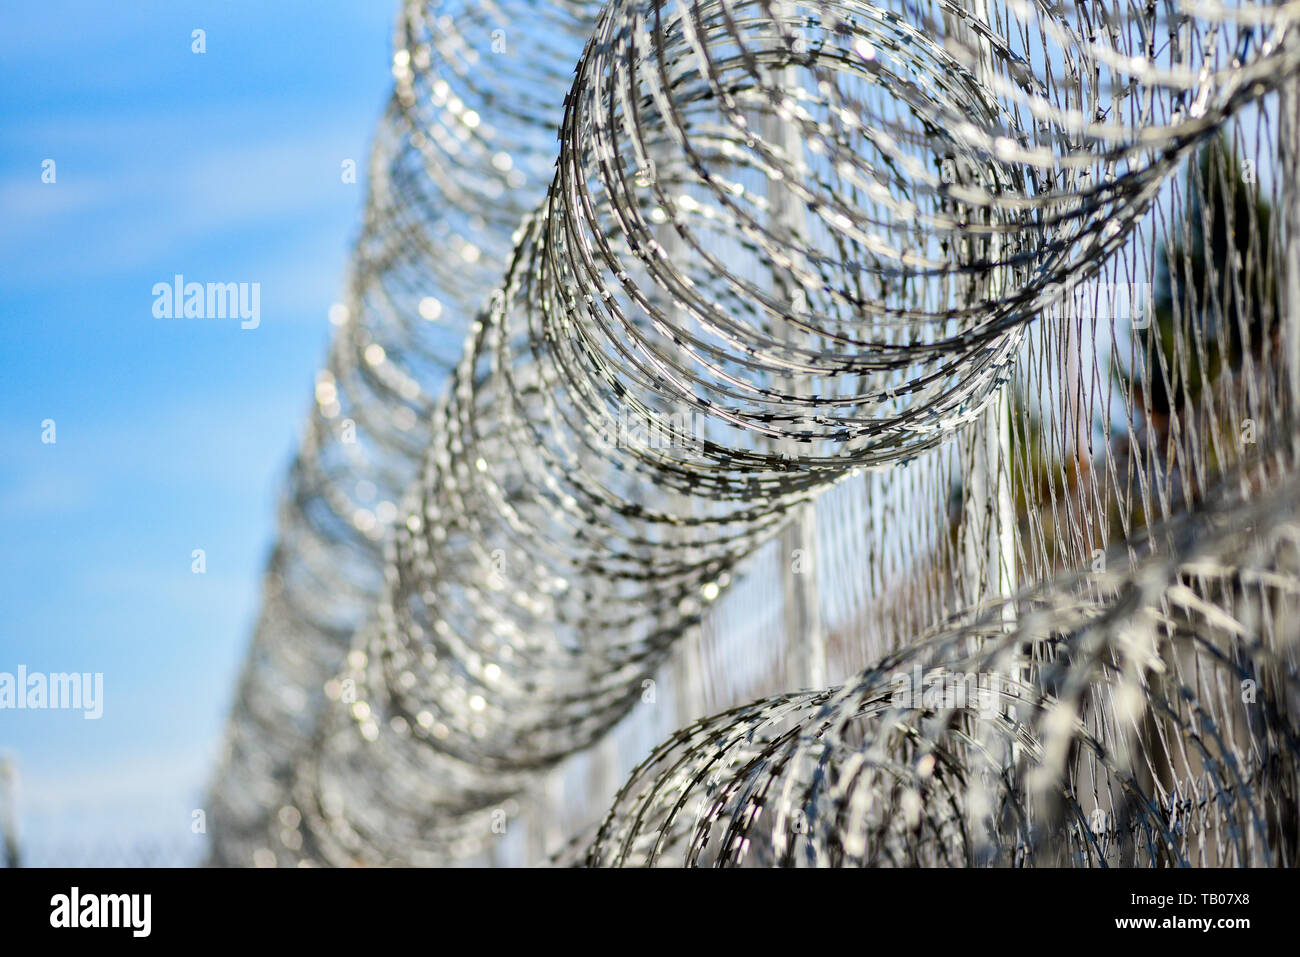 Barbed wire in prison, protecting prisoners from escaping. - Stock Image